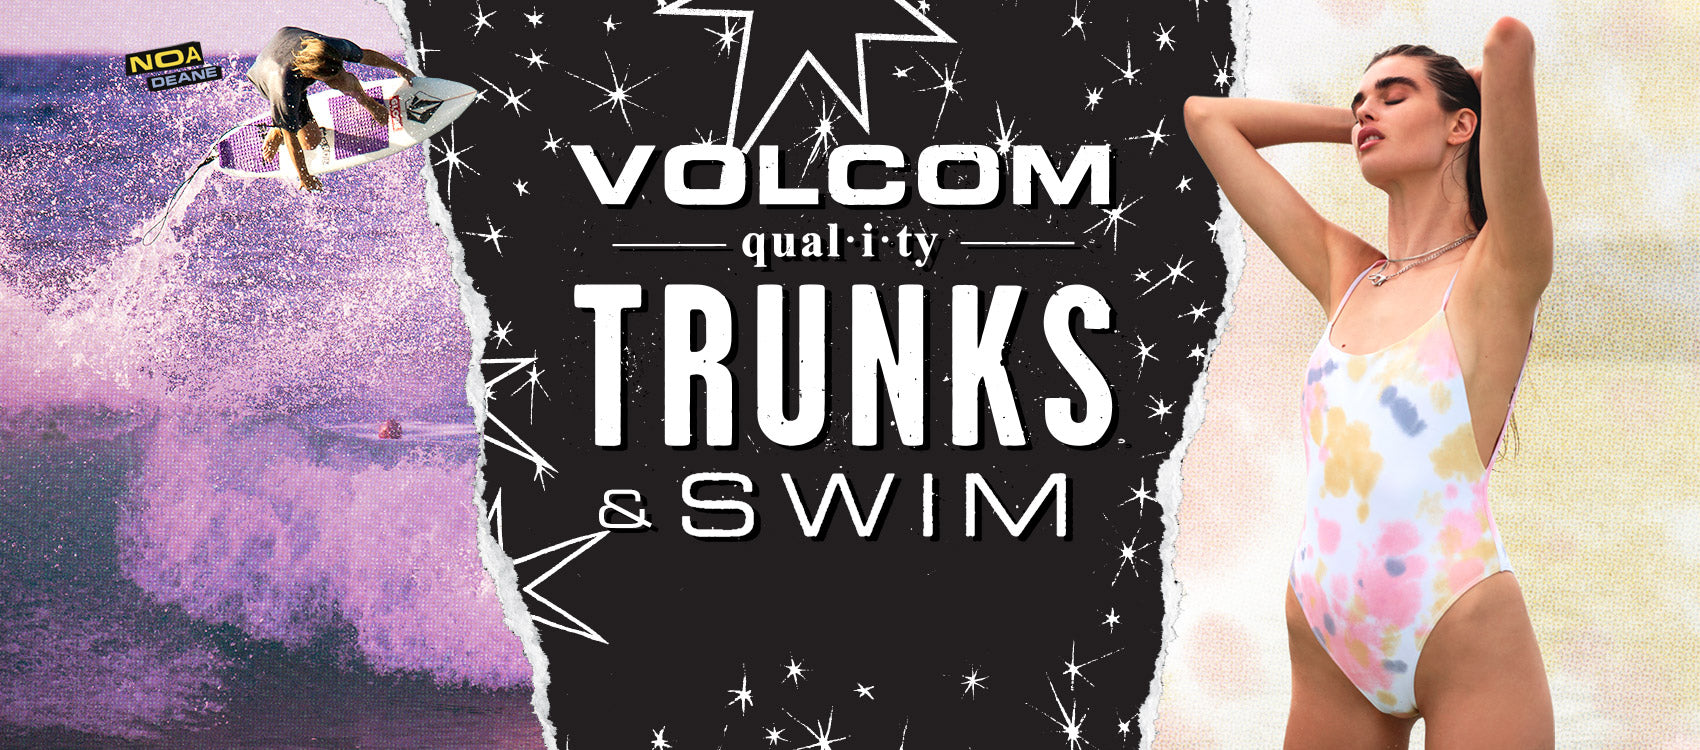 Volcom Trunks & Swim